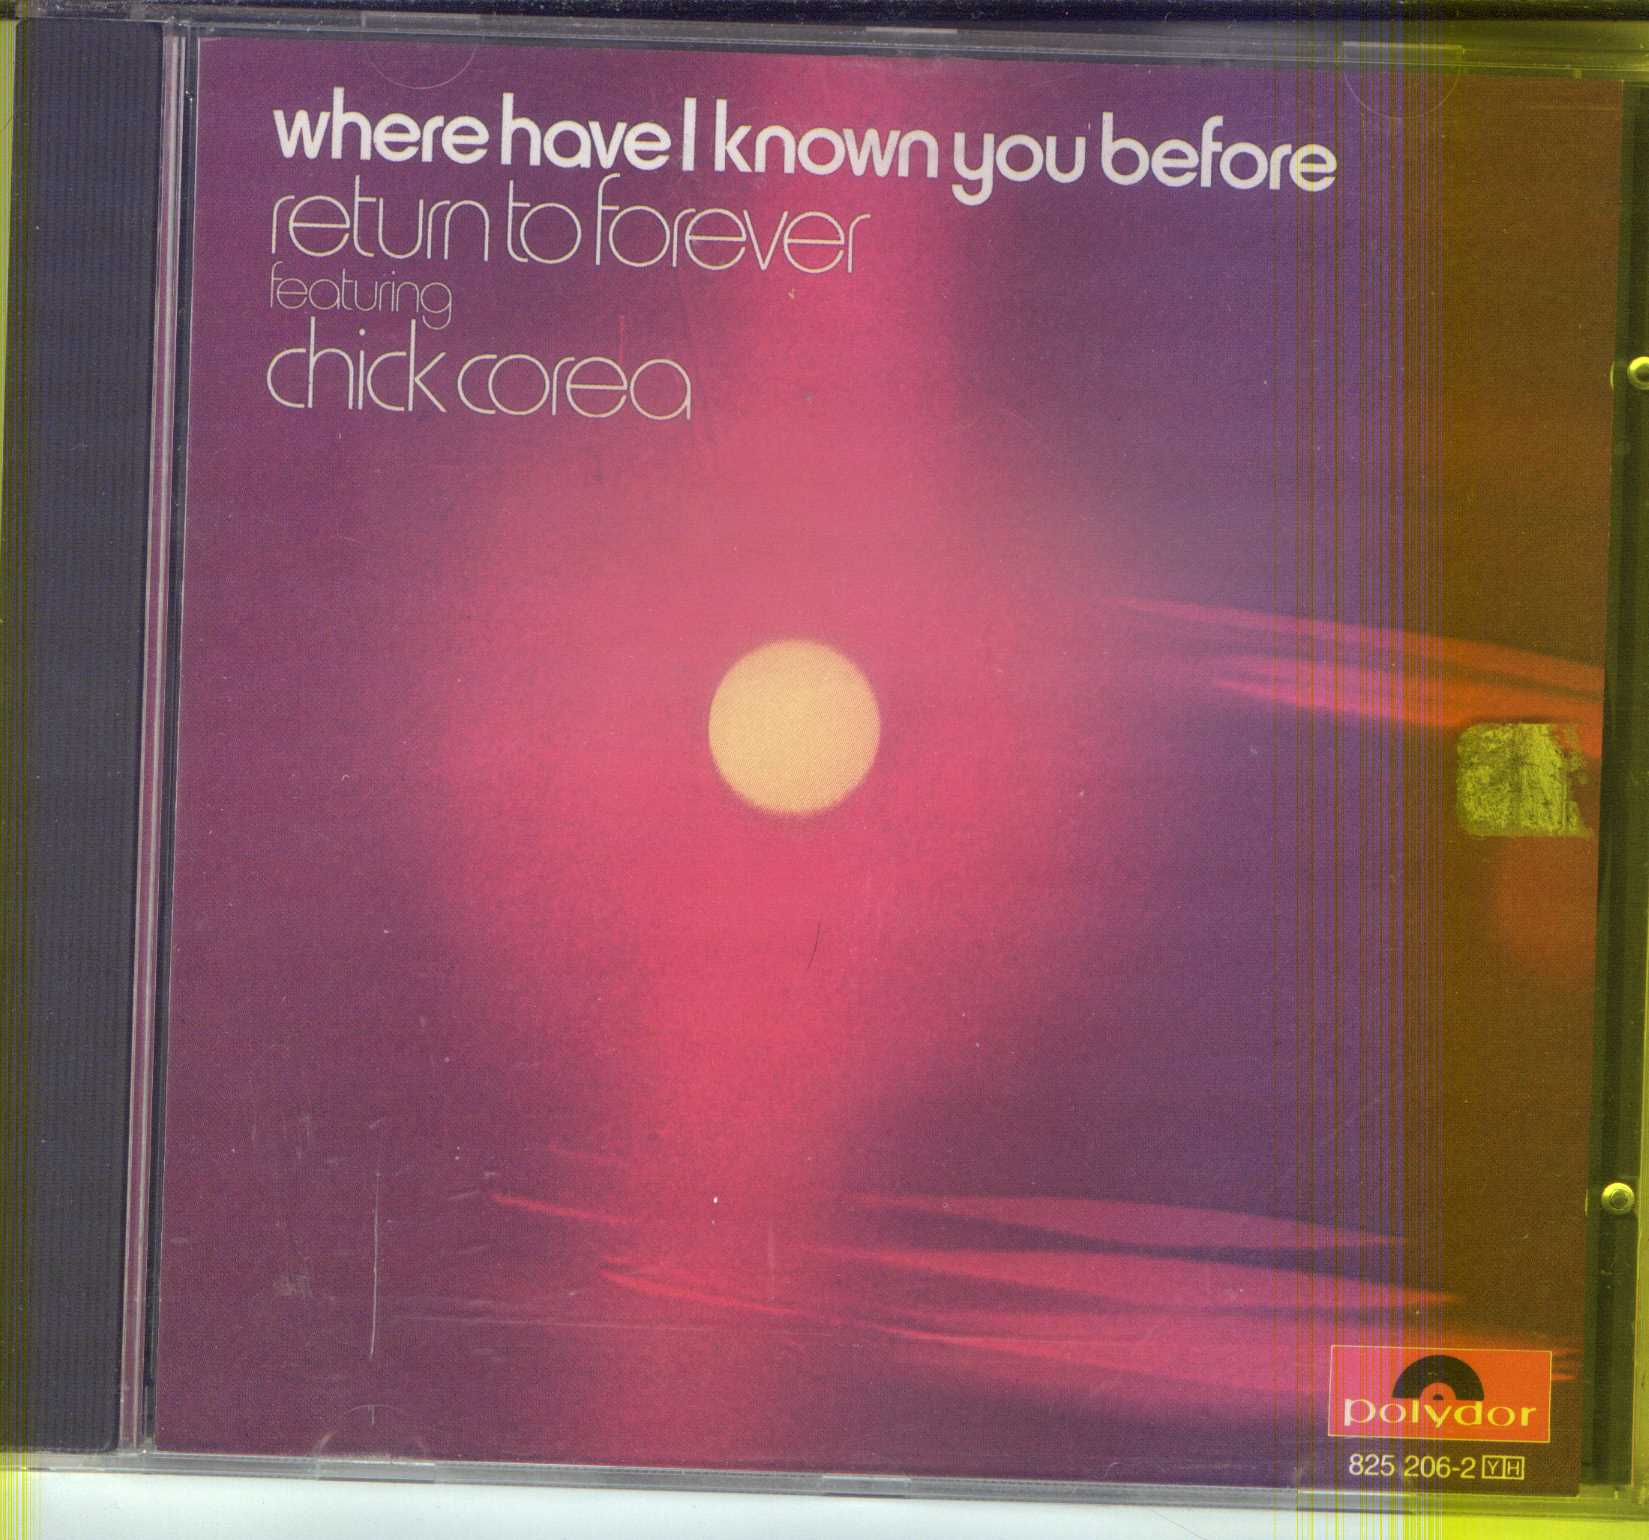 Where Have I Known You Before by Chick Corea/Return to Forever (CD, Oct-1990, Ve